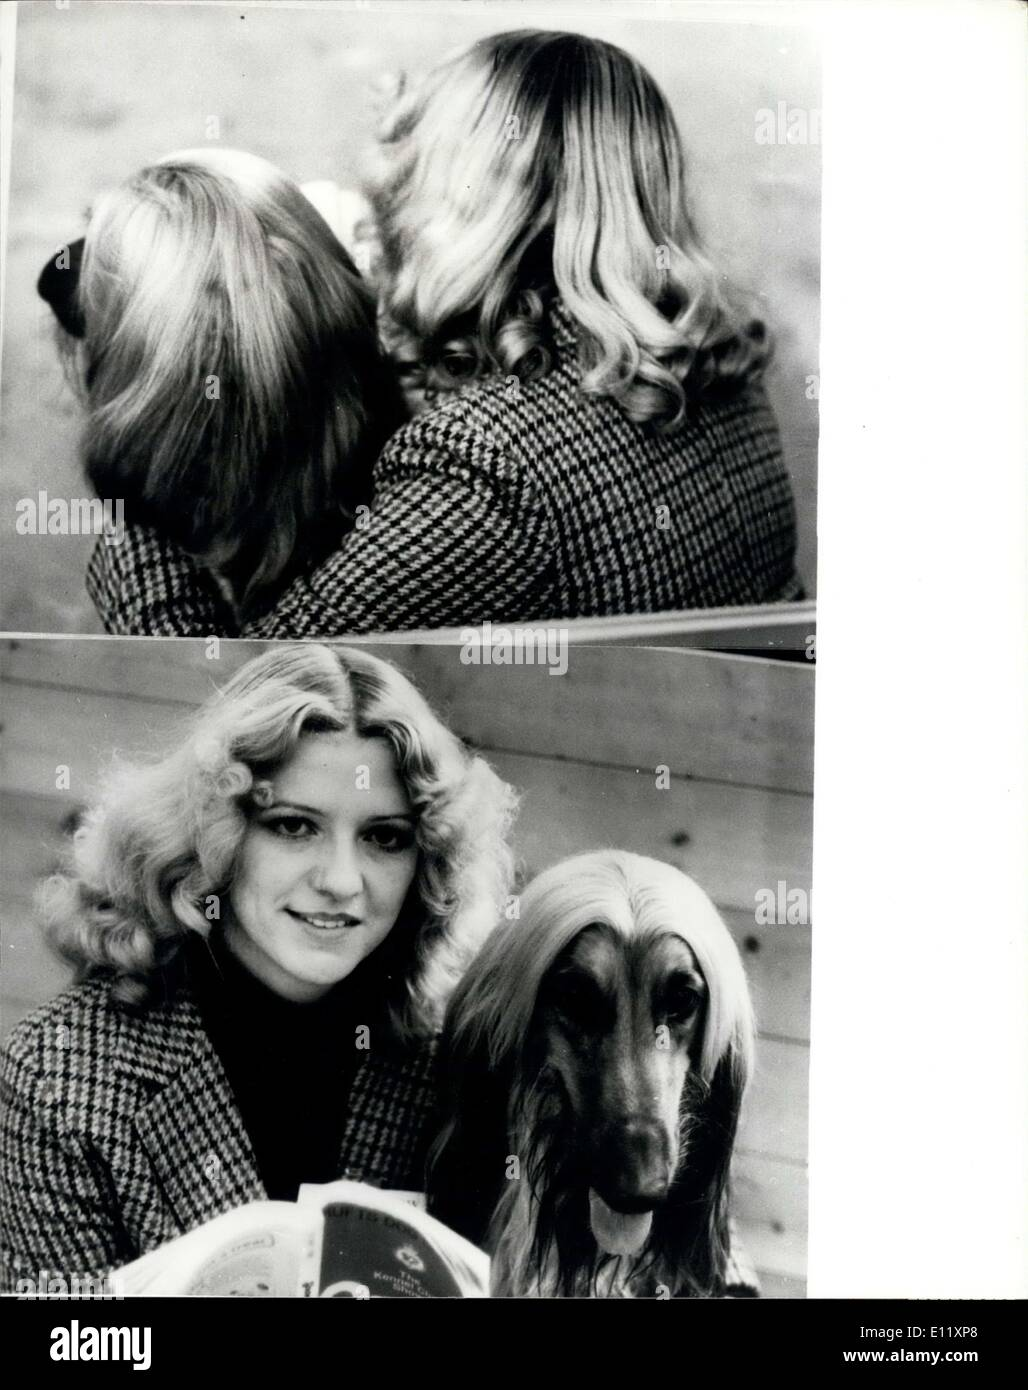 Feb. 13, 1981 - ''We are just good Friends?': Linda Clewley, from Wolrarhamption, took her best friends to the Curita Dog Show in Earls Court in London today - and in these day of long hair styles, from the back you can;t tell wether it a boy of a girl- but in this pictures you would be wrong- as the friends she is sitting with is her pet Dog Ziggi' an Afghan Hound who is entered in the show. Photo shows 'Young Lovars' Linda Clewley and her friend 'Ziggi'. Bellow Linda and Ziggi and her Afghan Hound at the Crufts Dog Show as they await the judging to start. - Stock Image